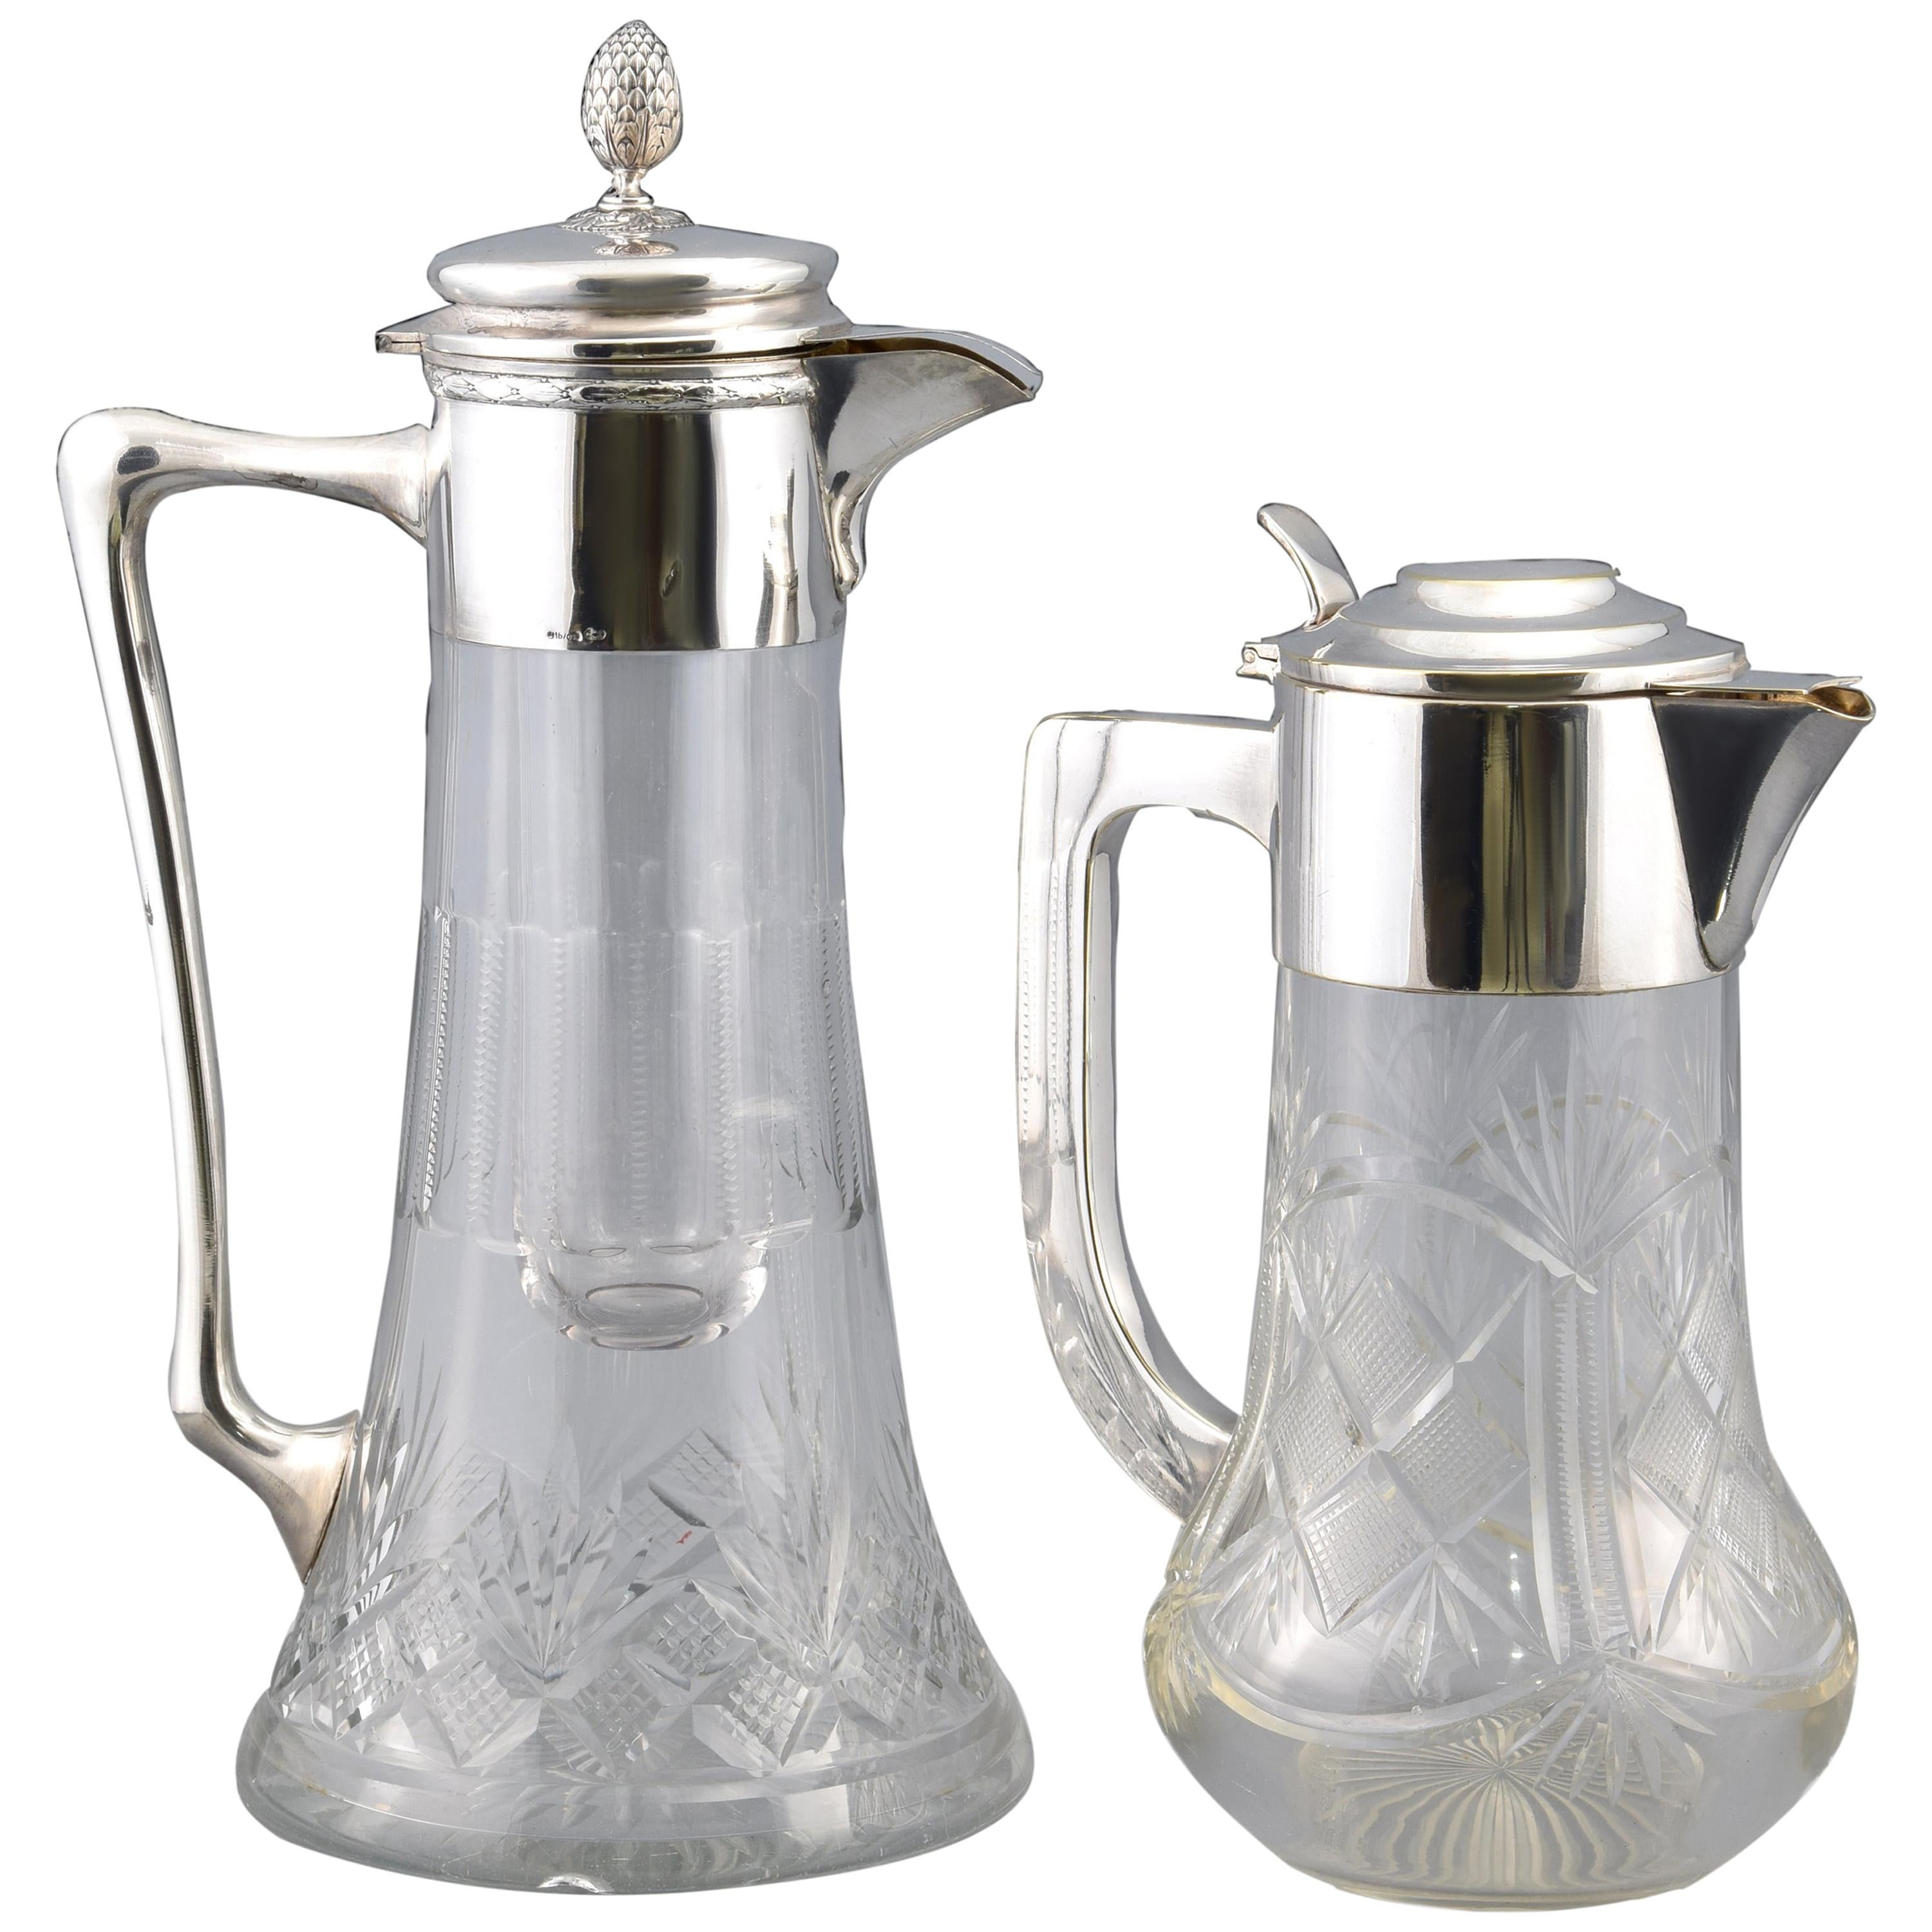 Two Jars, Silver and Glass, 20th Century